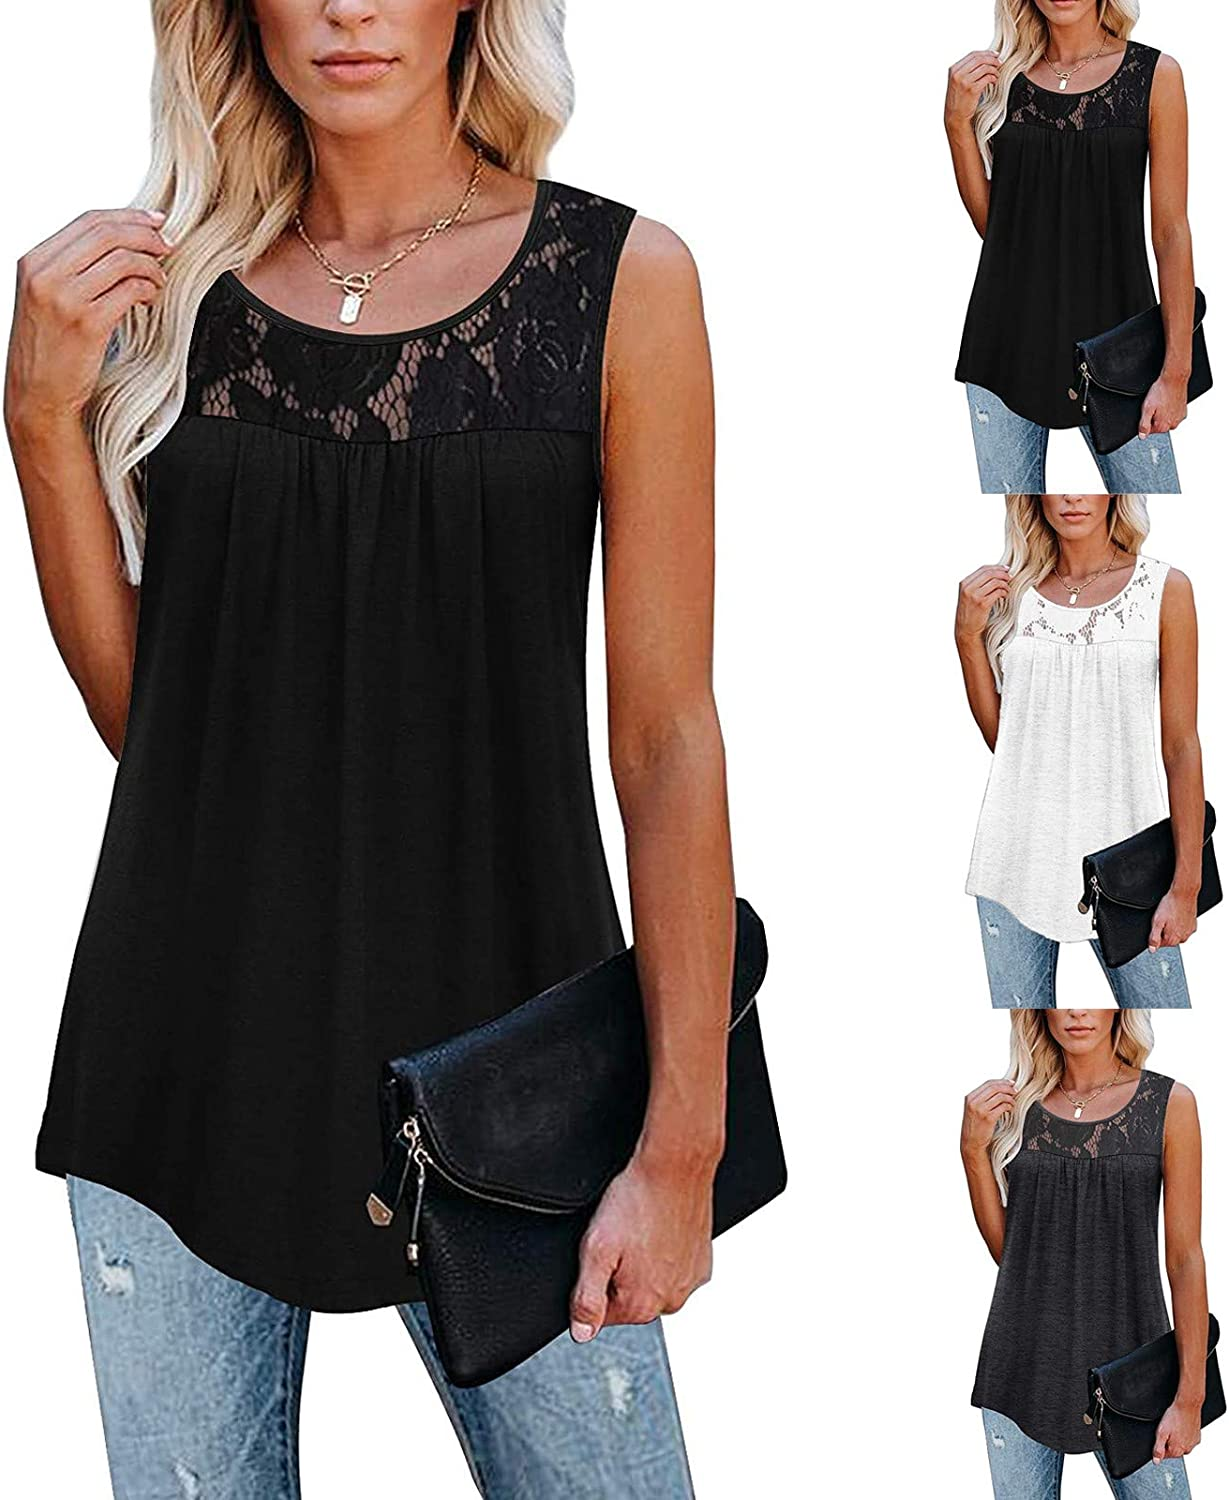 Aukbays Womens Tank Tops,Womens Summer Tops Casual Solid Button Pleated T-Shirt Blouse